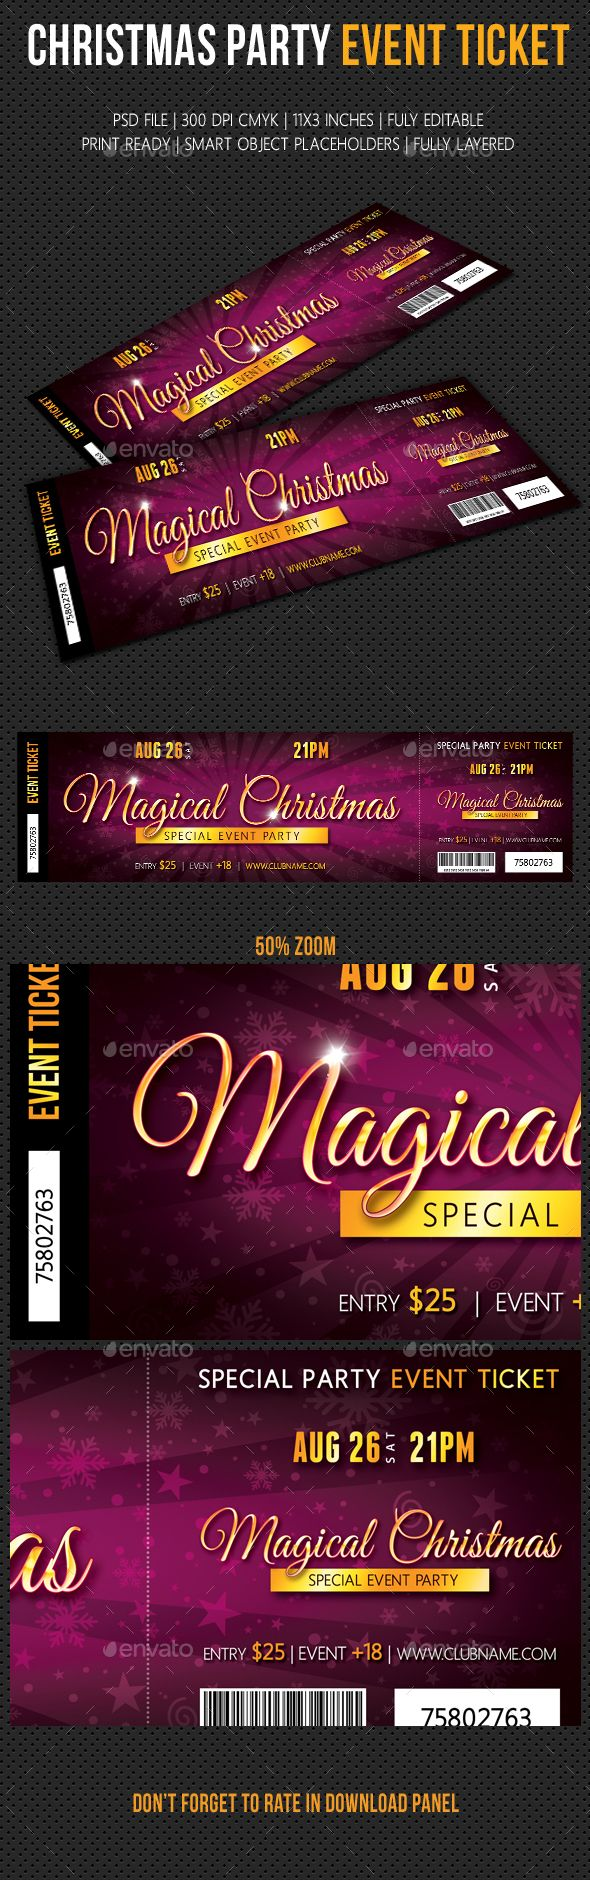 Best Tickets Design Images On Pinterest Ticket Design Flyer